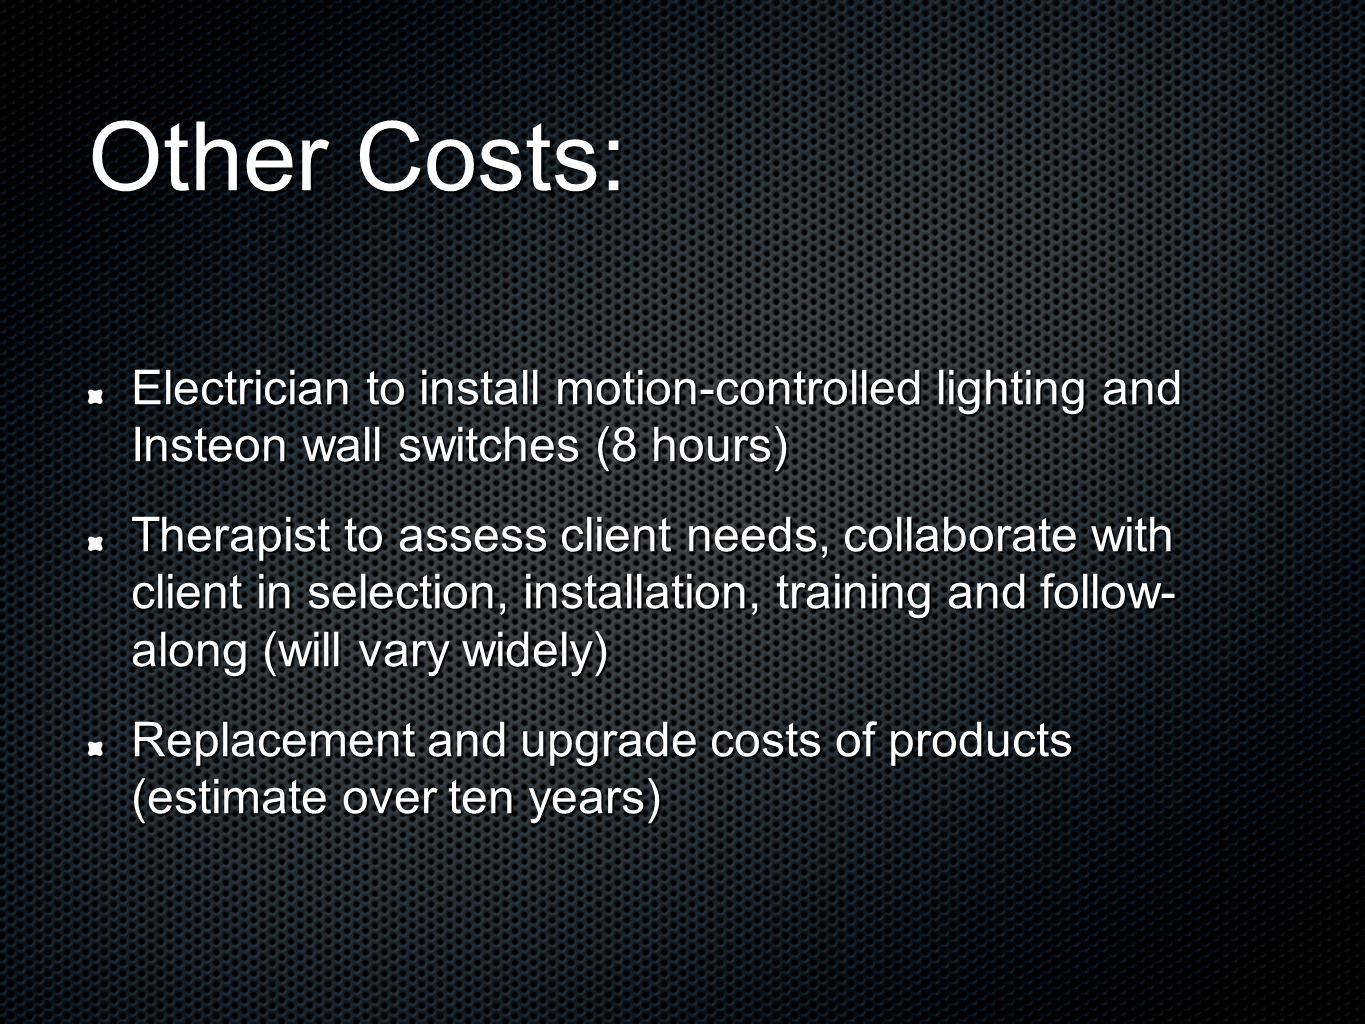 Other Costs: Electrician to install motion-controlled lighting and Insteon wall switches (8 hours) Therapist to assess client needs, collaborate with client in selection, installation, training and follow- along (will vary widely) Replacement and upgrade costs of products (estimate over ten years)